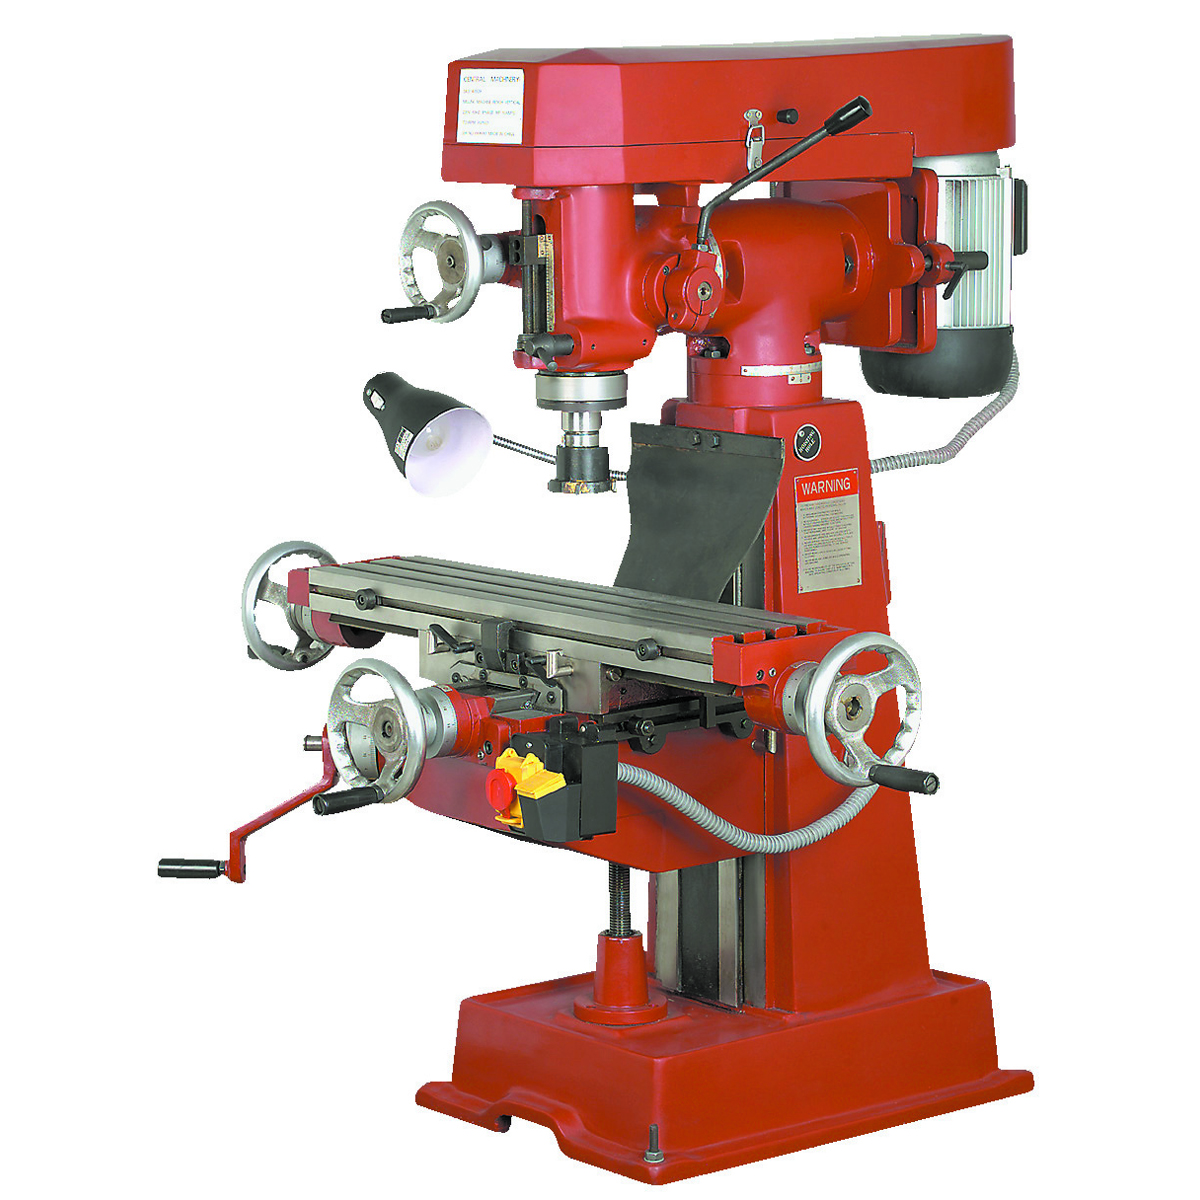 milling machine images